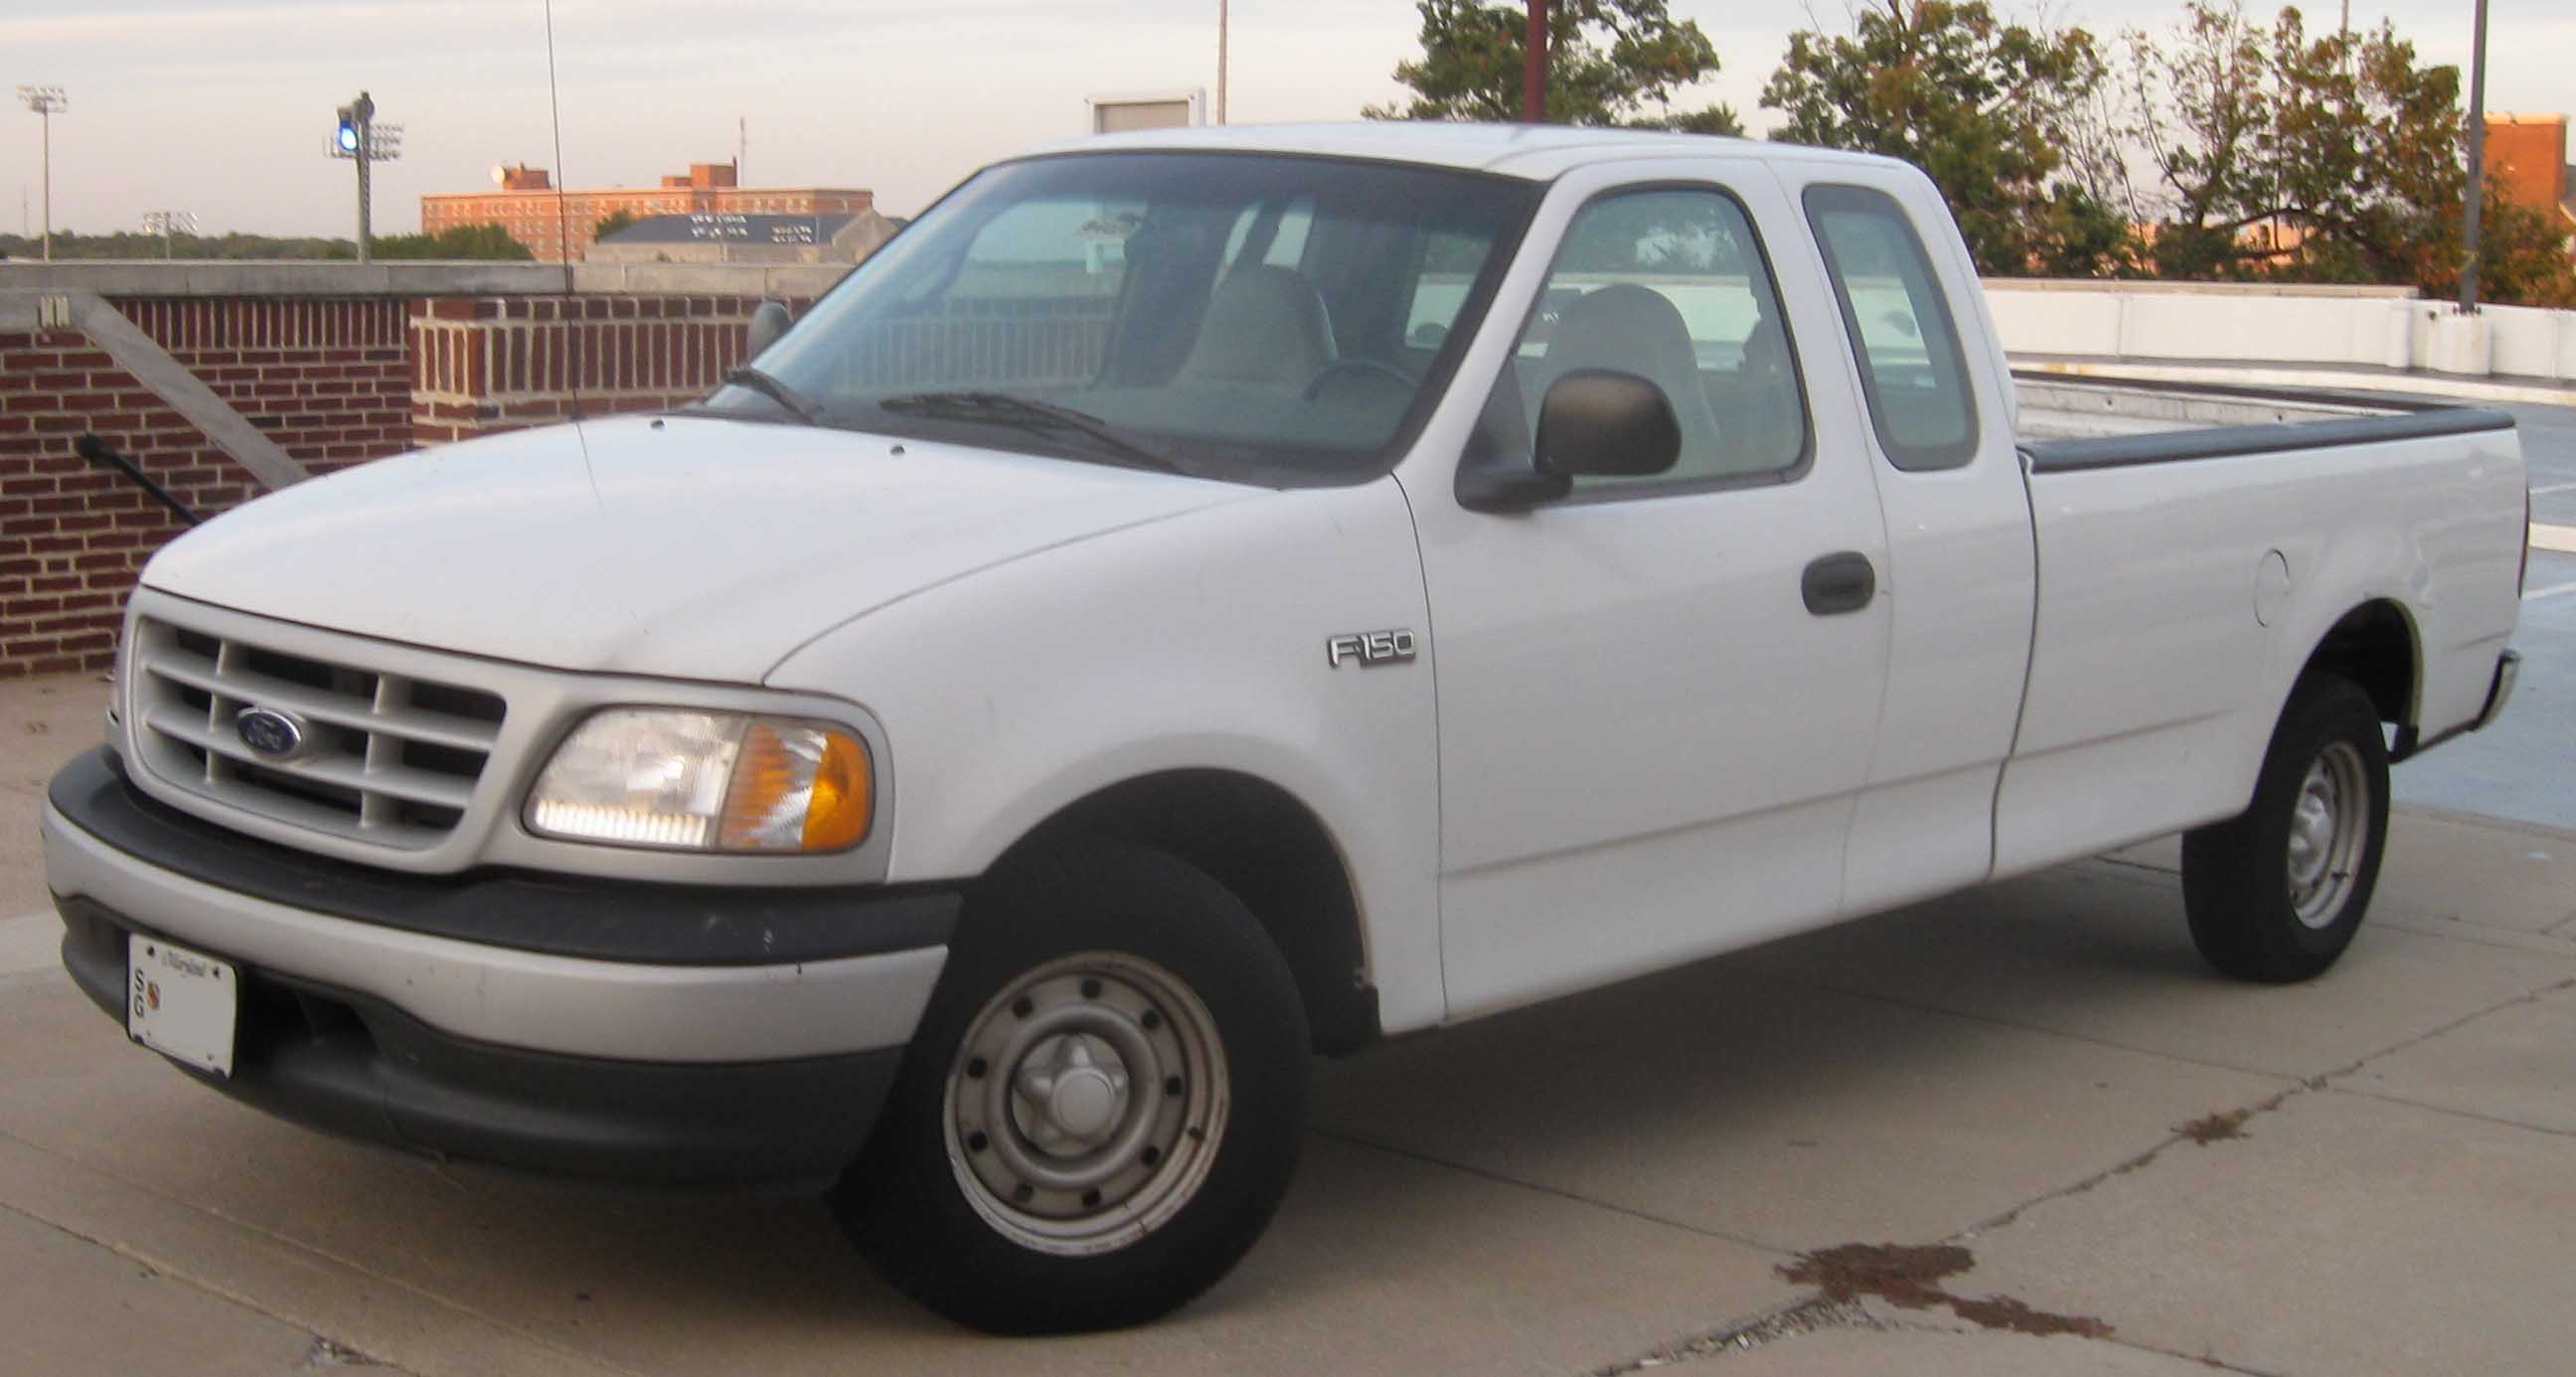 Fileford F 150 Ext Cab Long Bedjpg Wikipedia